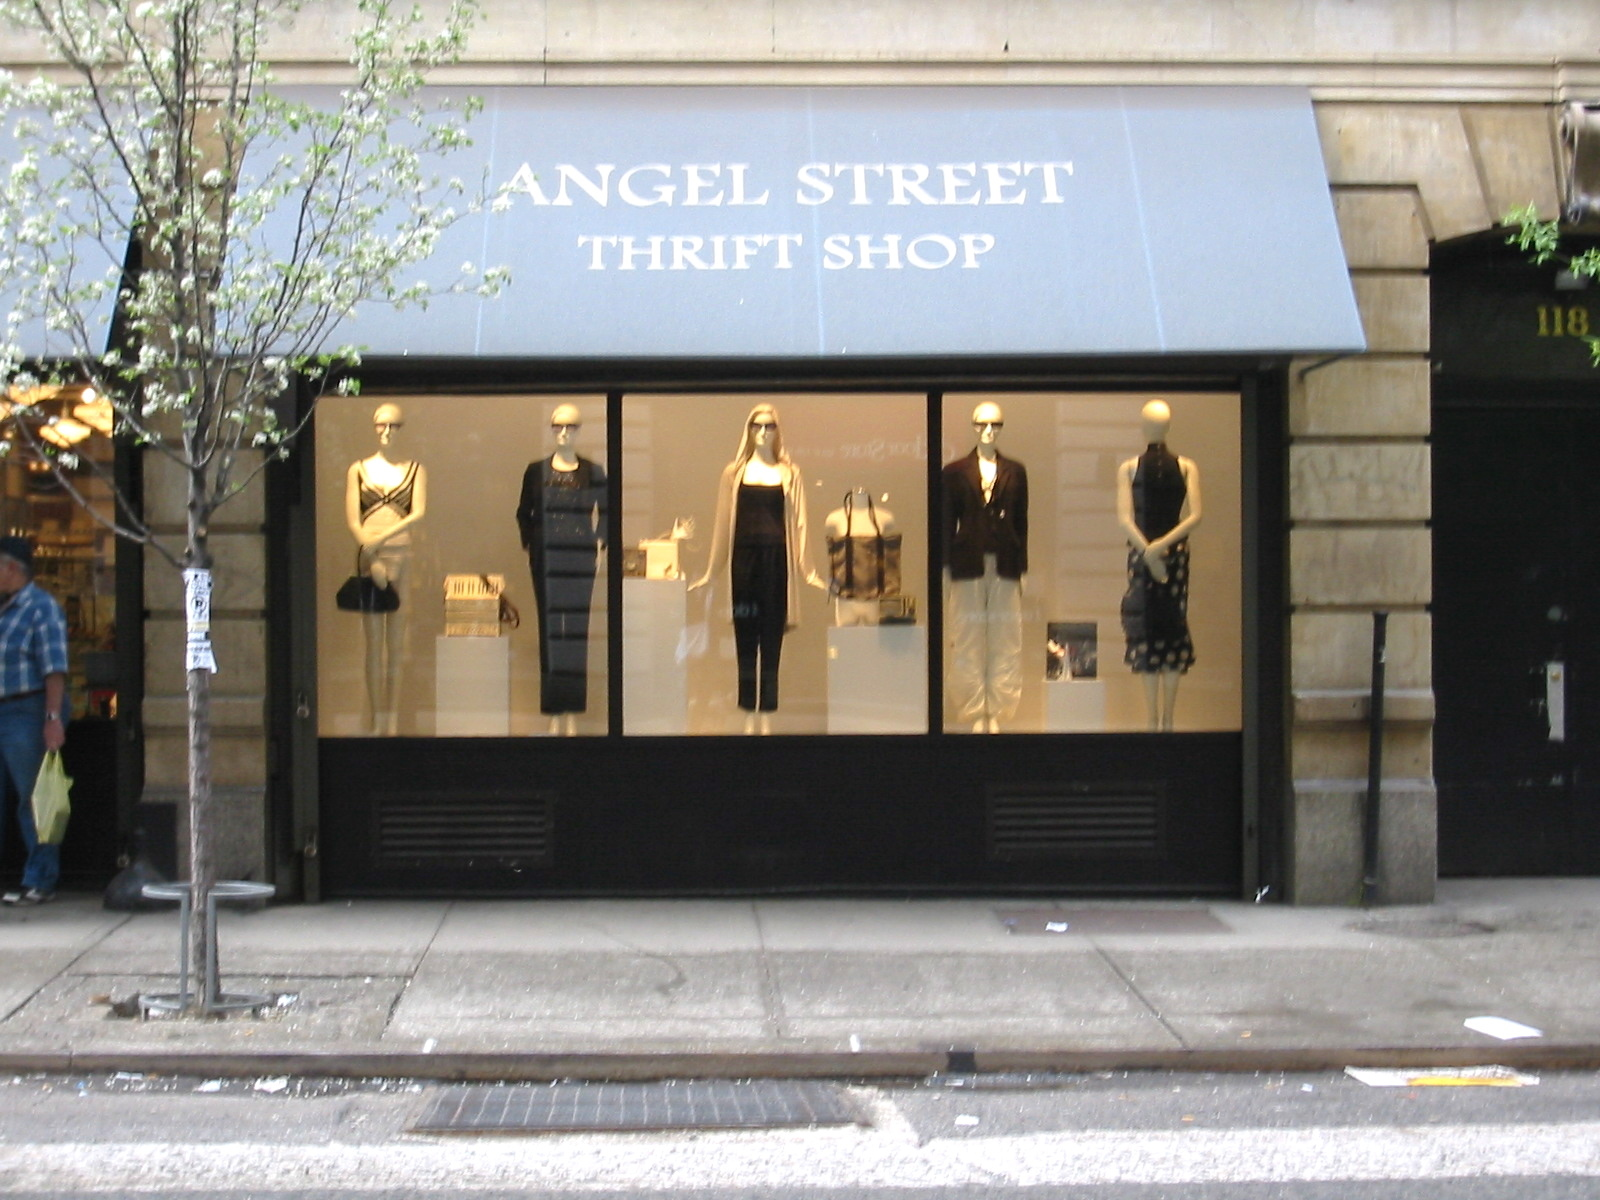 Angel Street Thrift Shop